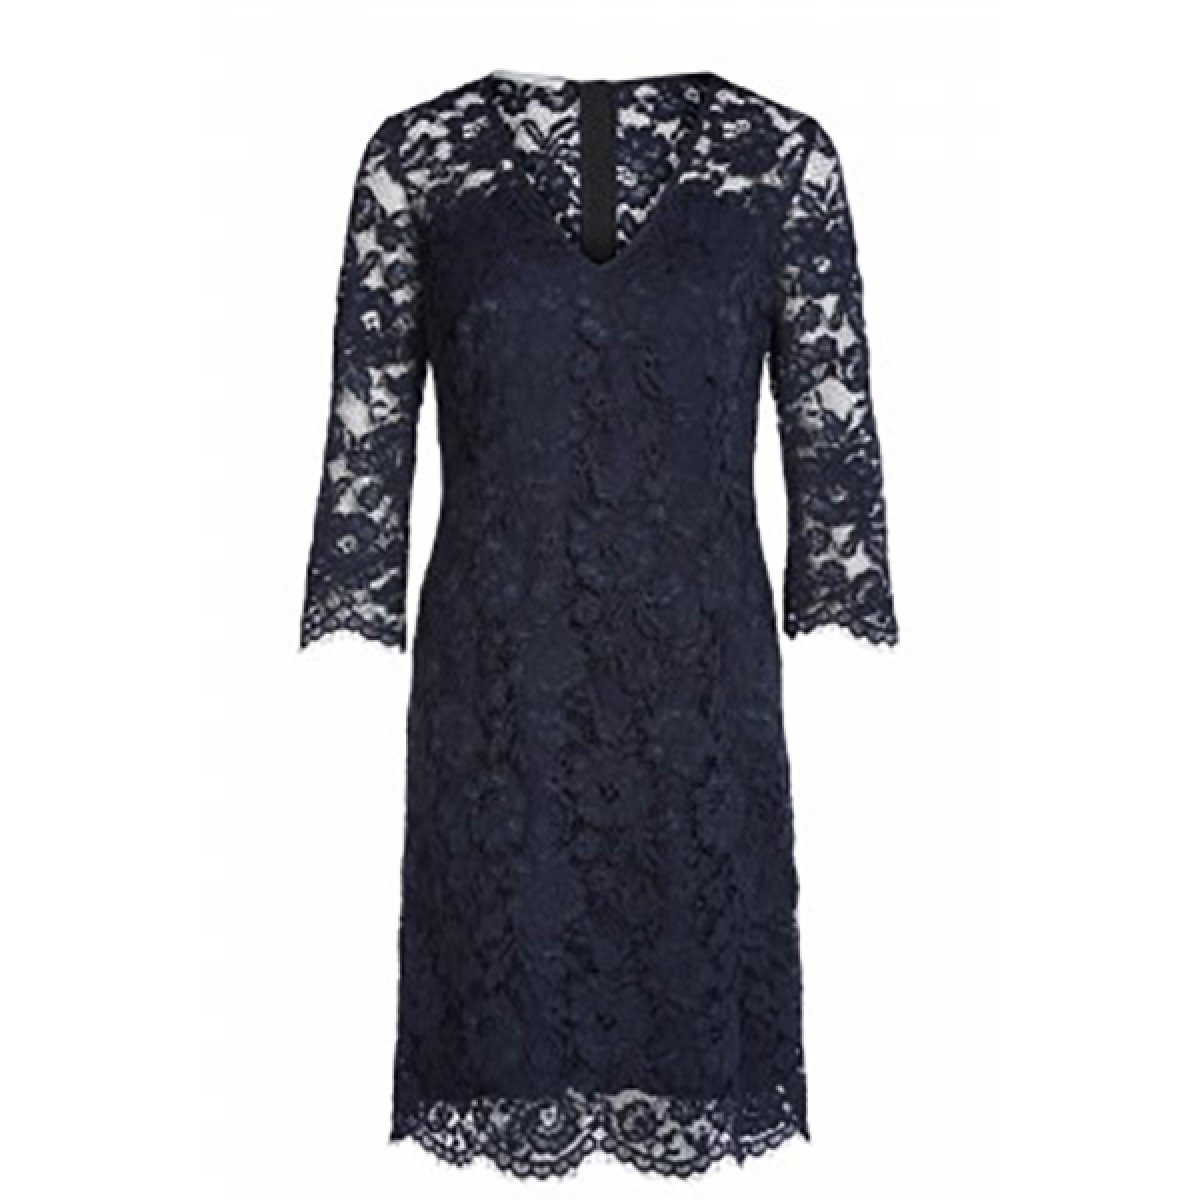 Oui 57600 Dress 5728 Nightsky-36